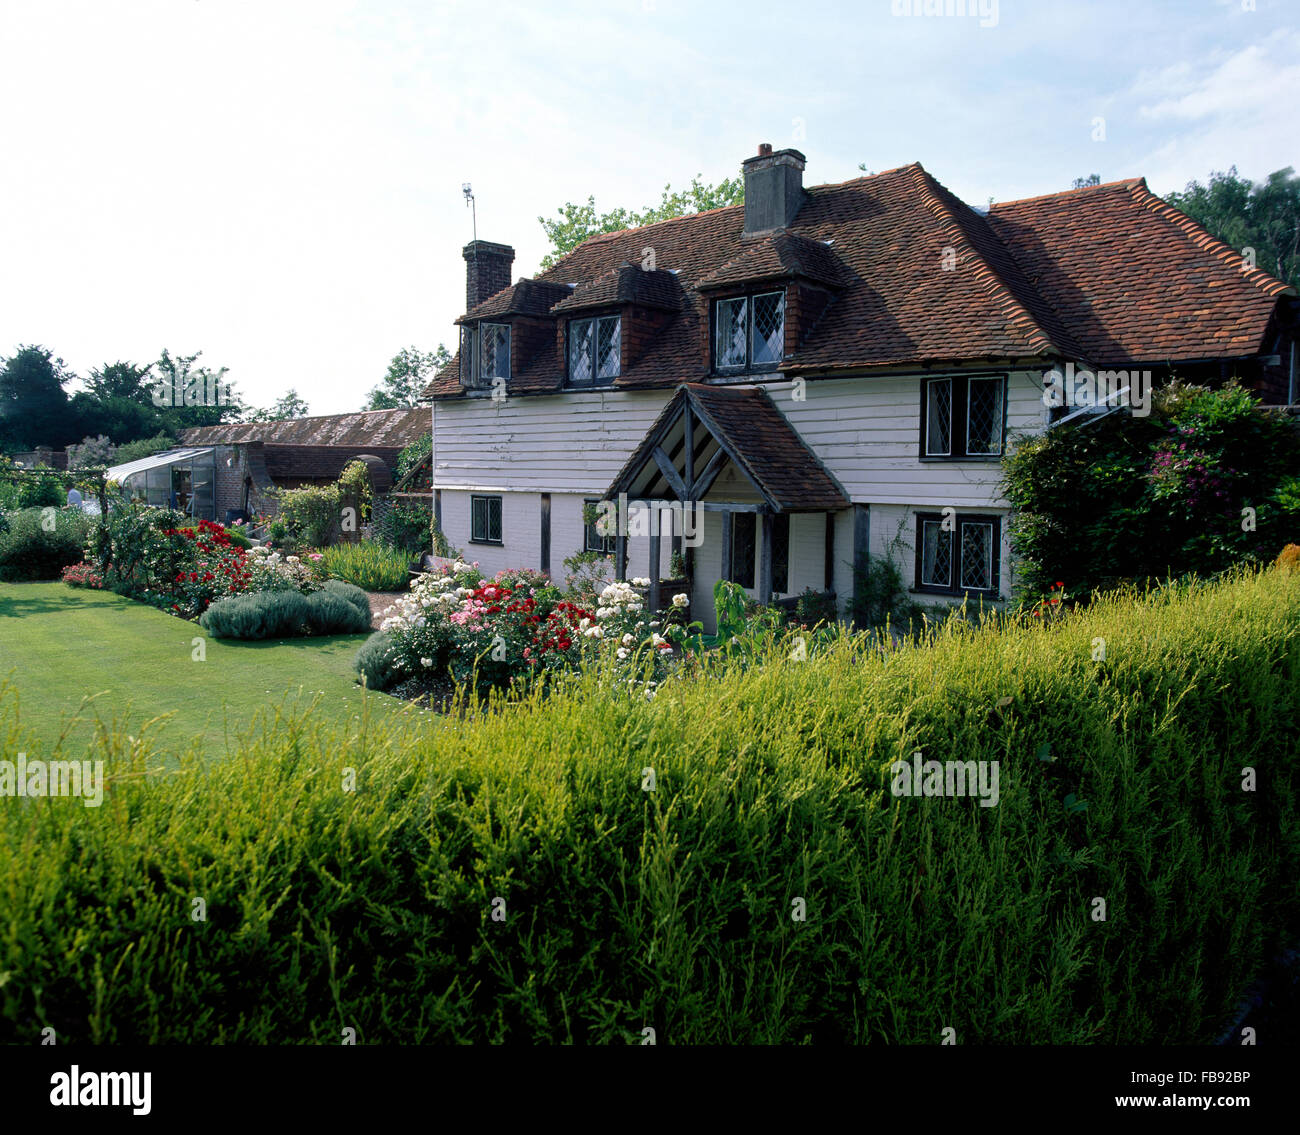 Exterior of a white clapboard cottage with a low conifer hedge bordering the garden - Stock Image